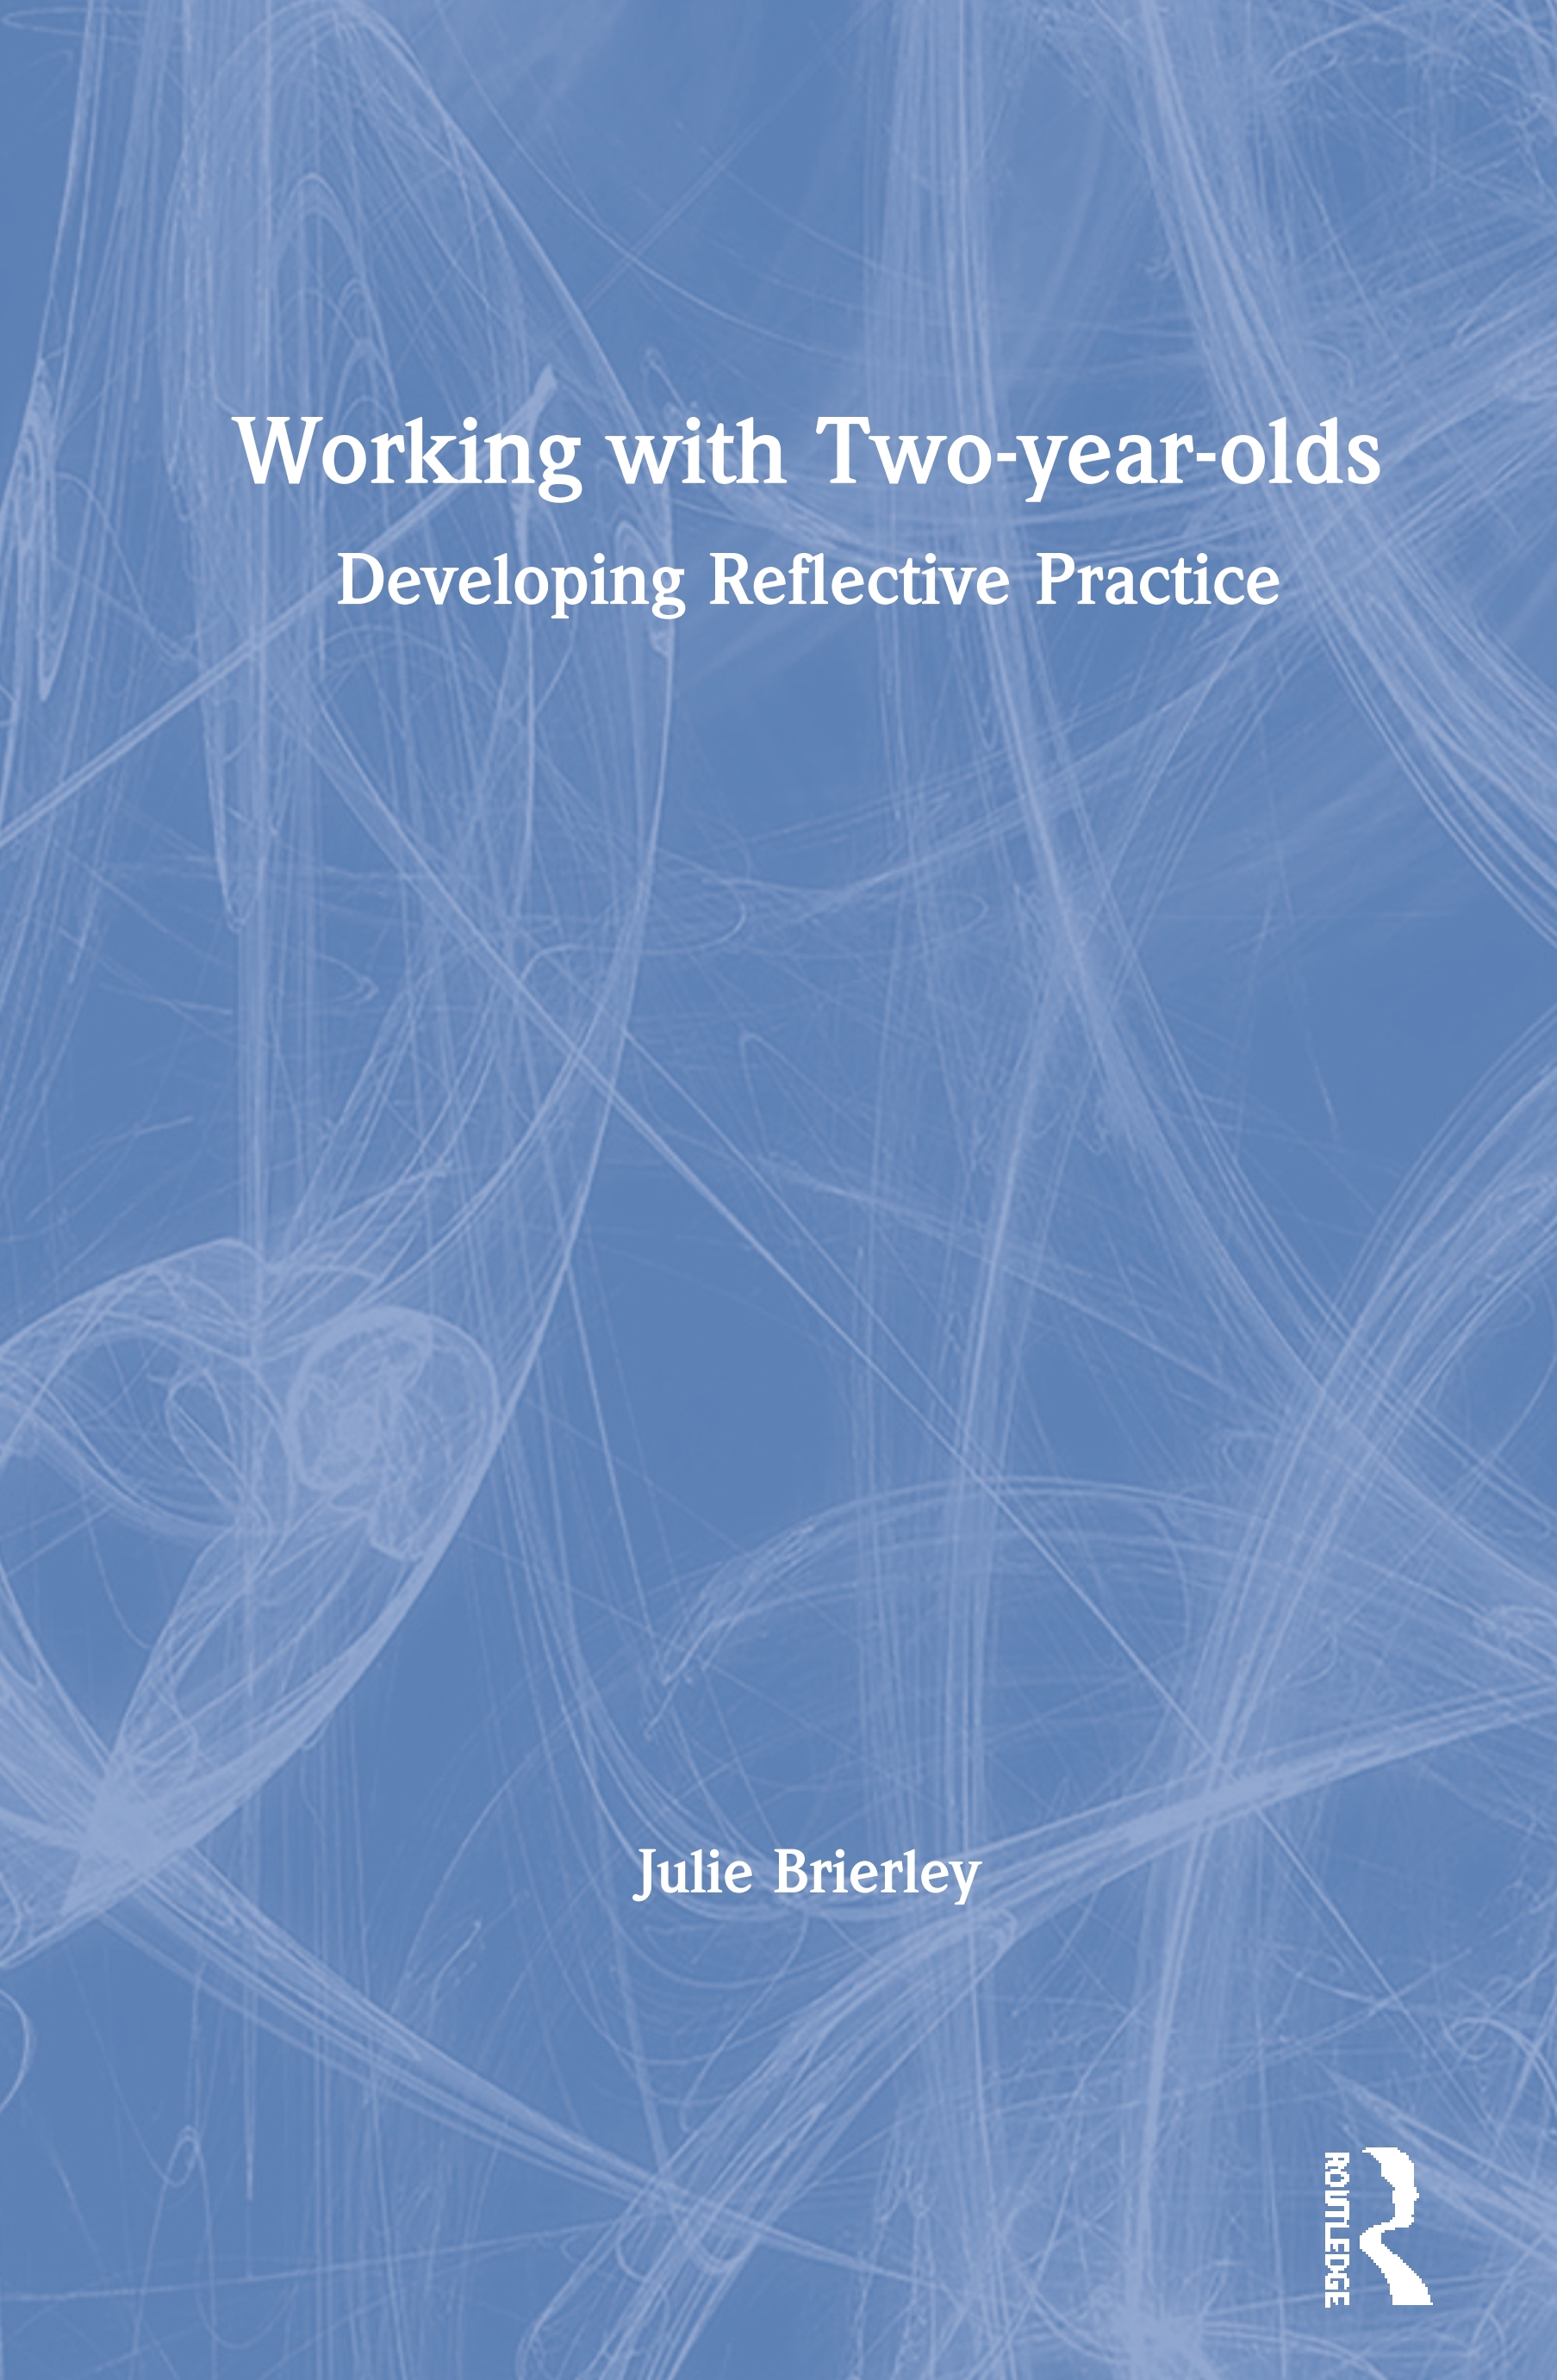 Working with Two-year-olds: Developing Reflective Practice book cover